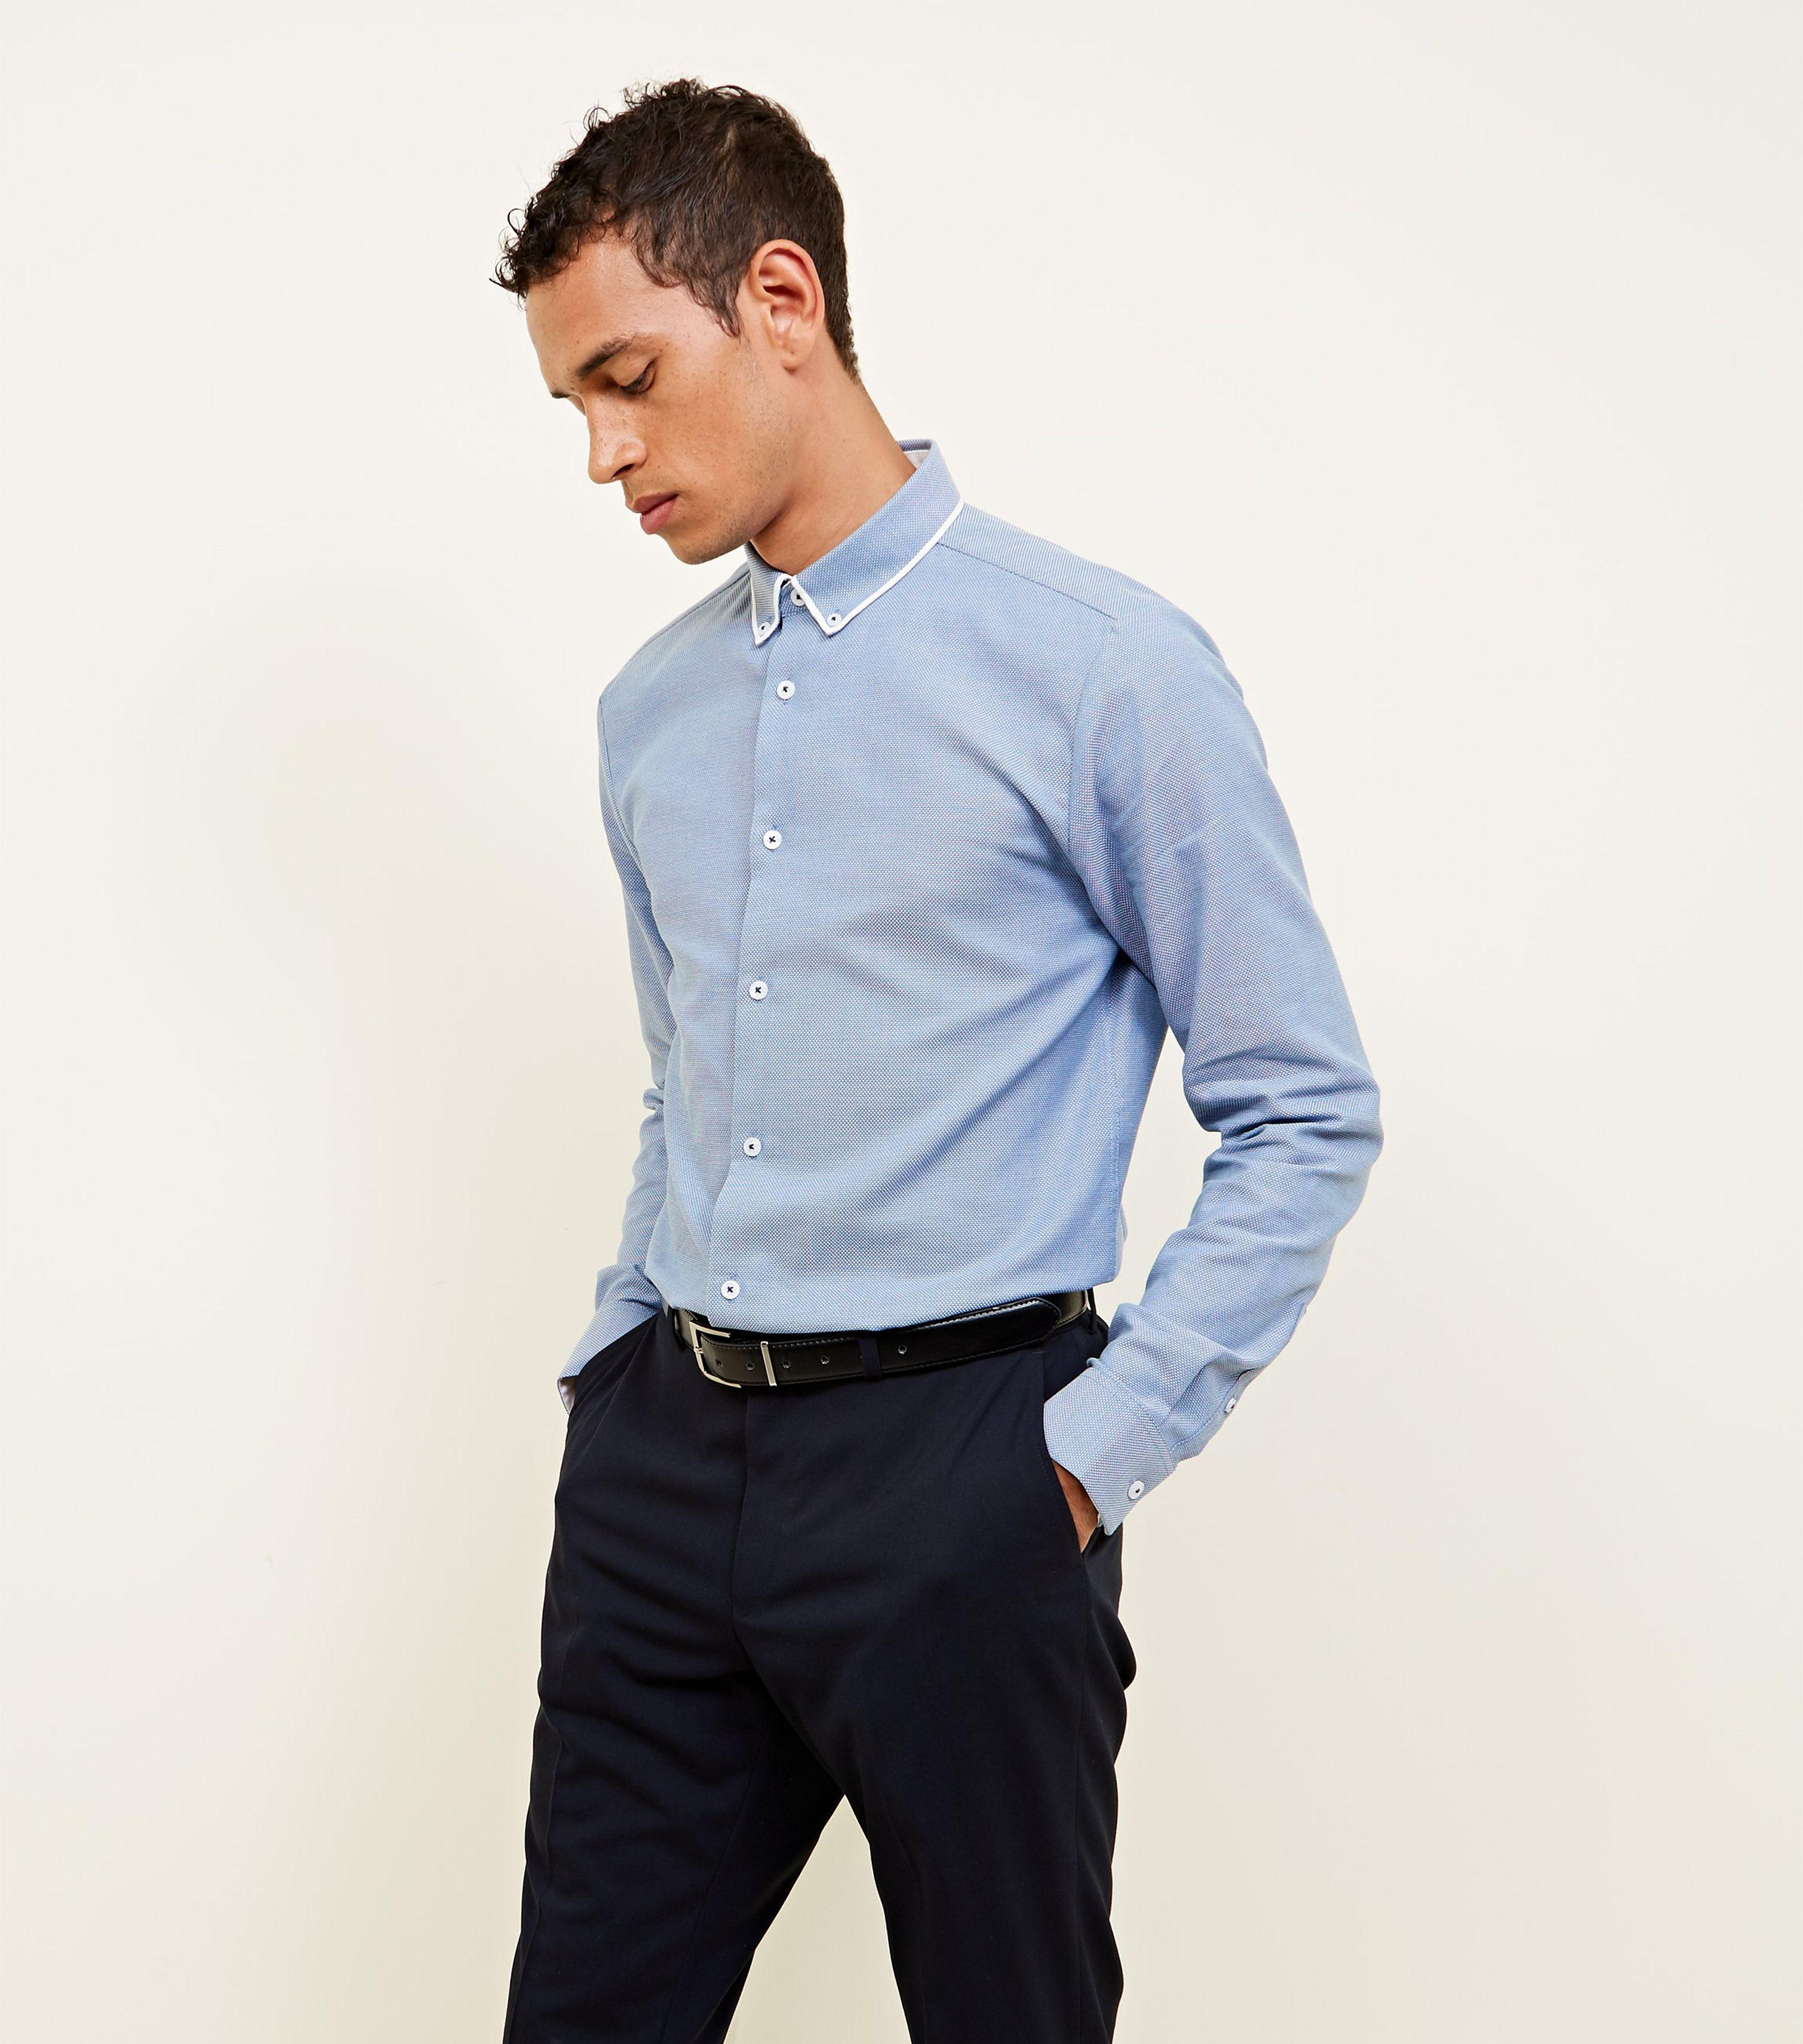 794bb1946f4 Lyst - New Look Navy Textured Double Collared Shirt in Blue for Men